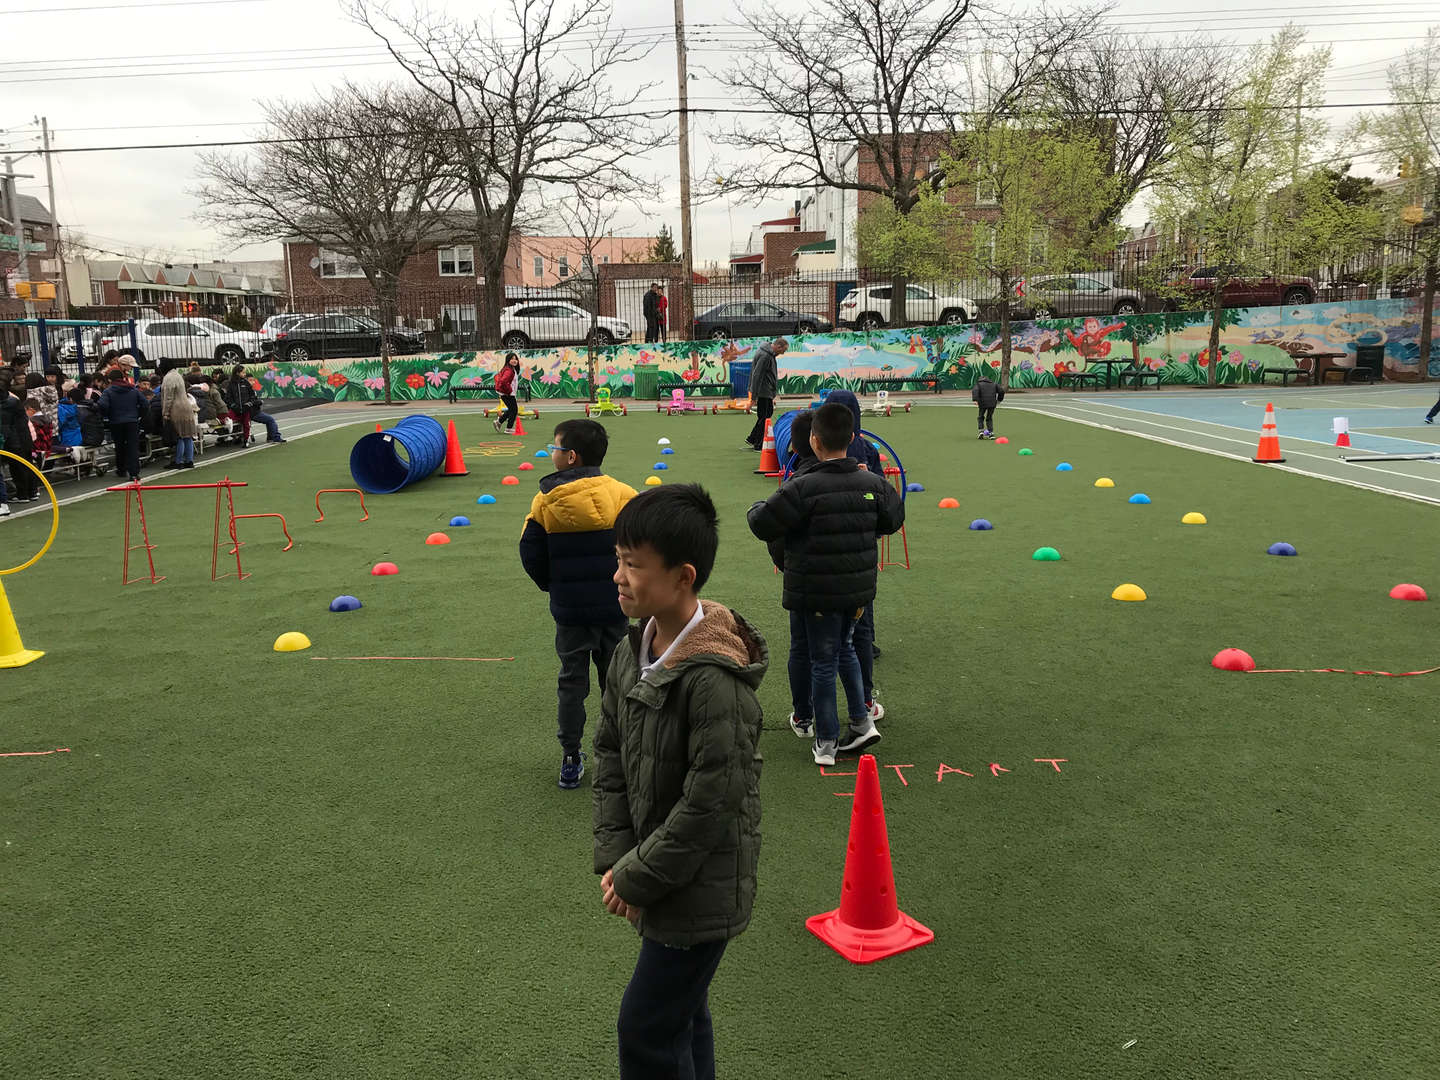 Student obstacle course outdoor set up.